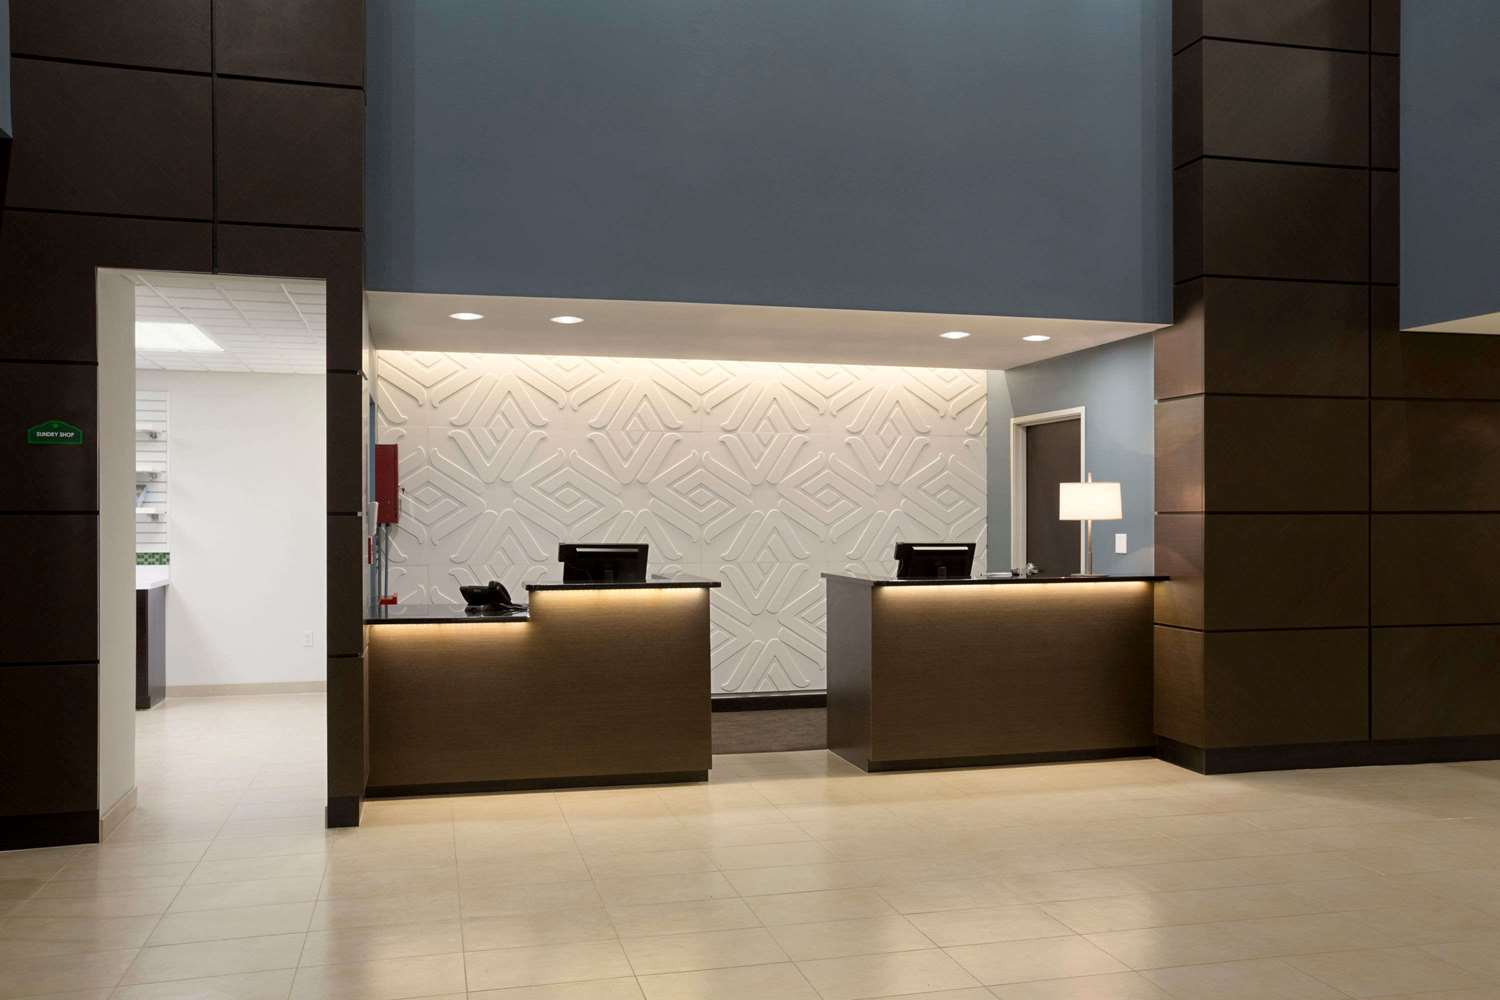 Lobby - Wingate by Wyndham Hotel East Slidell